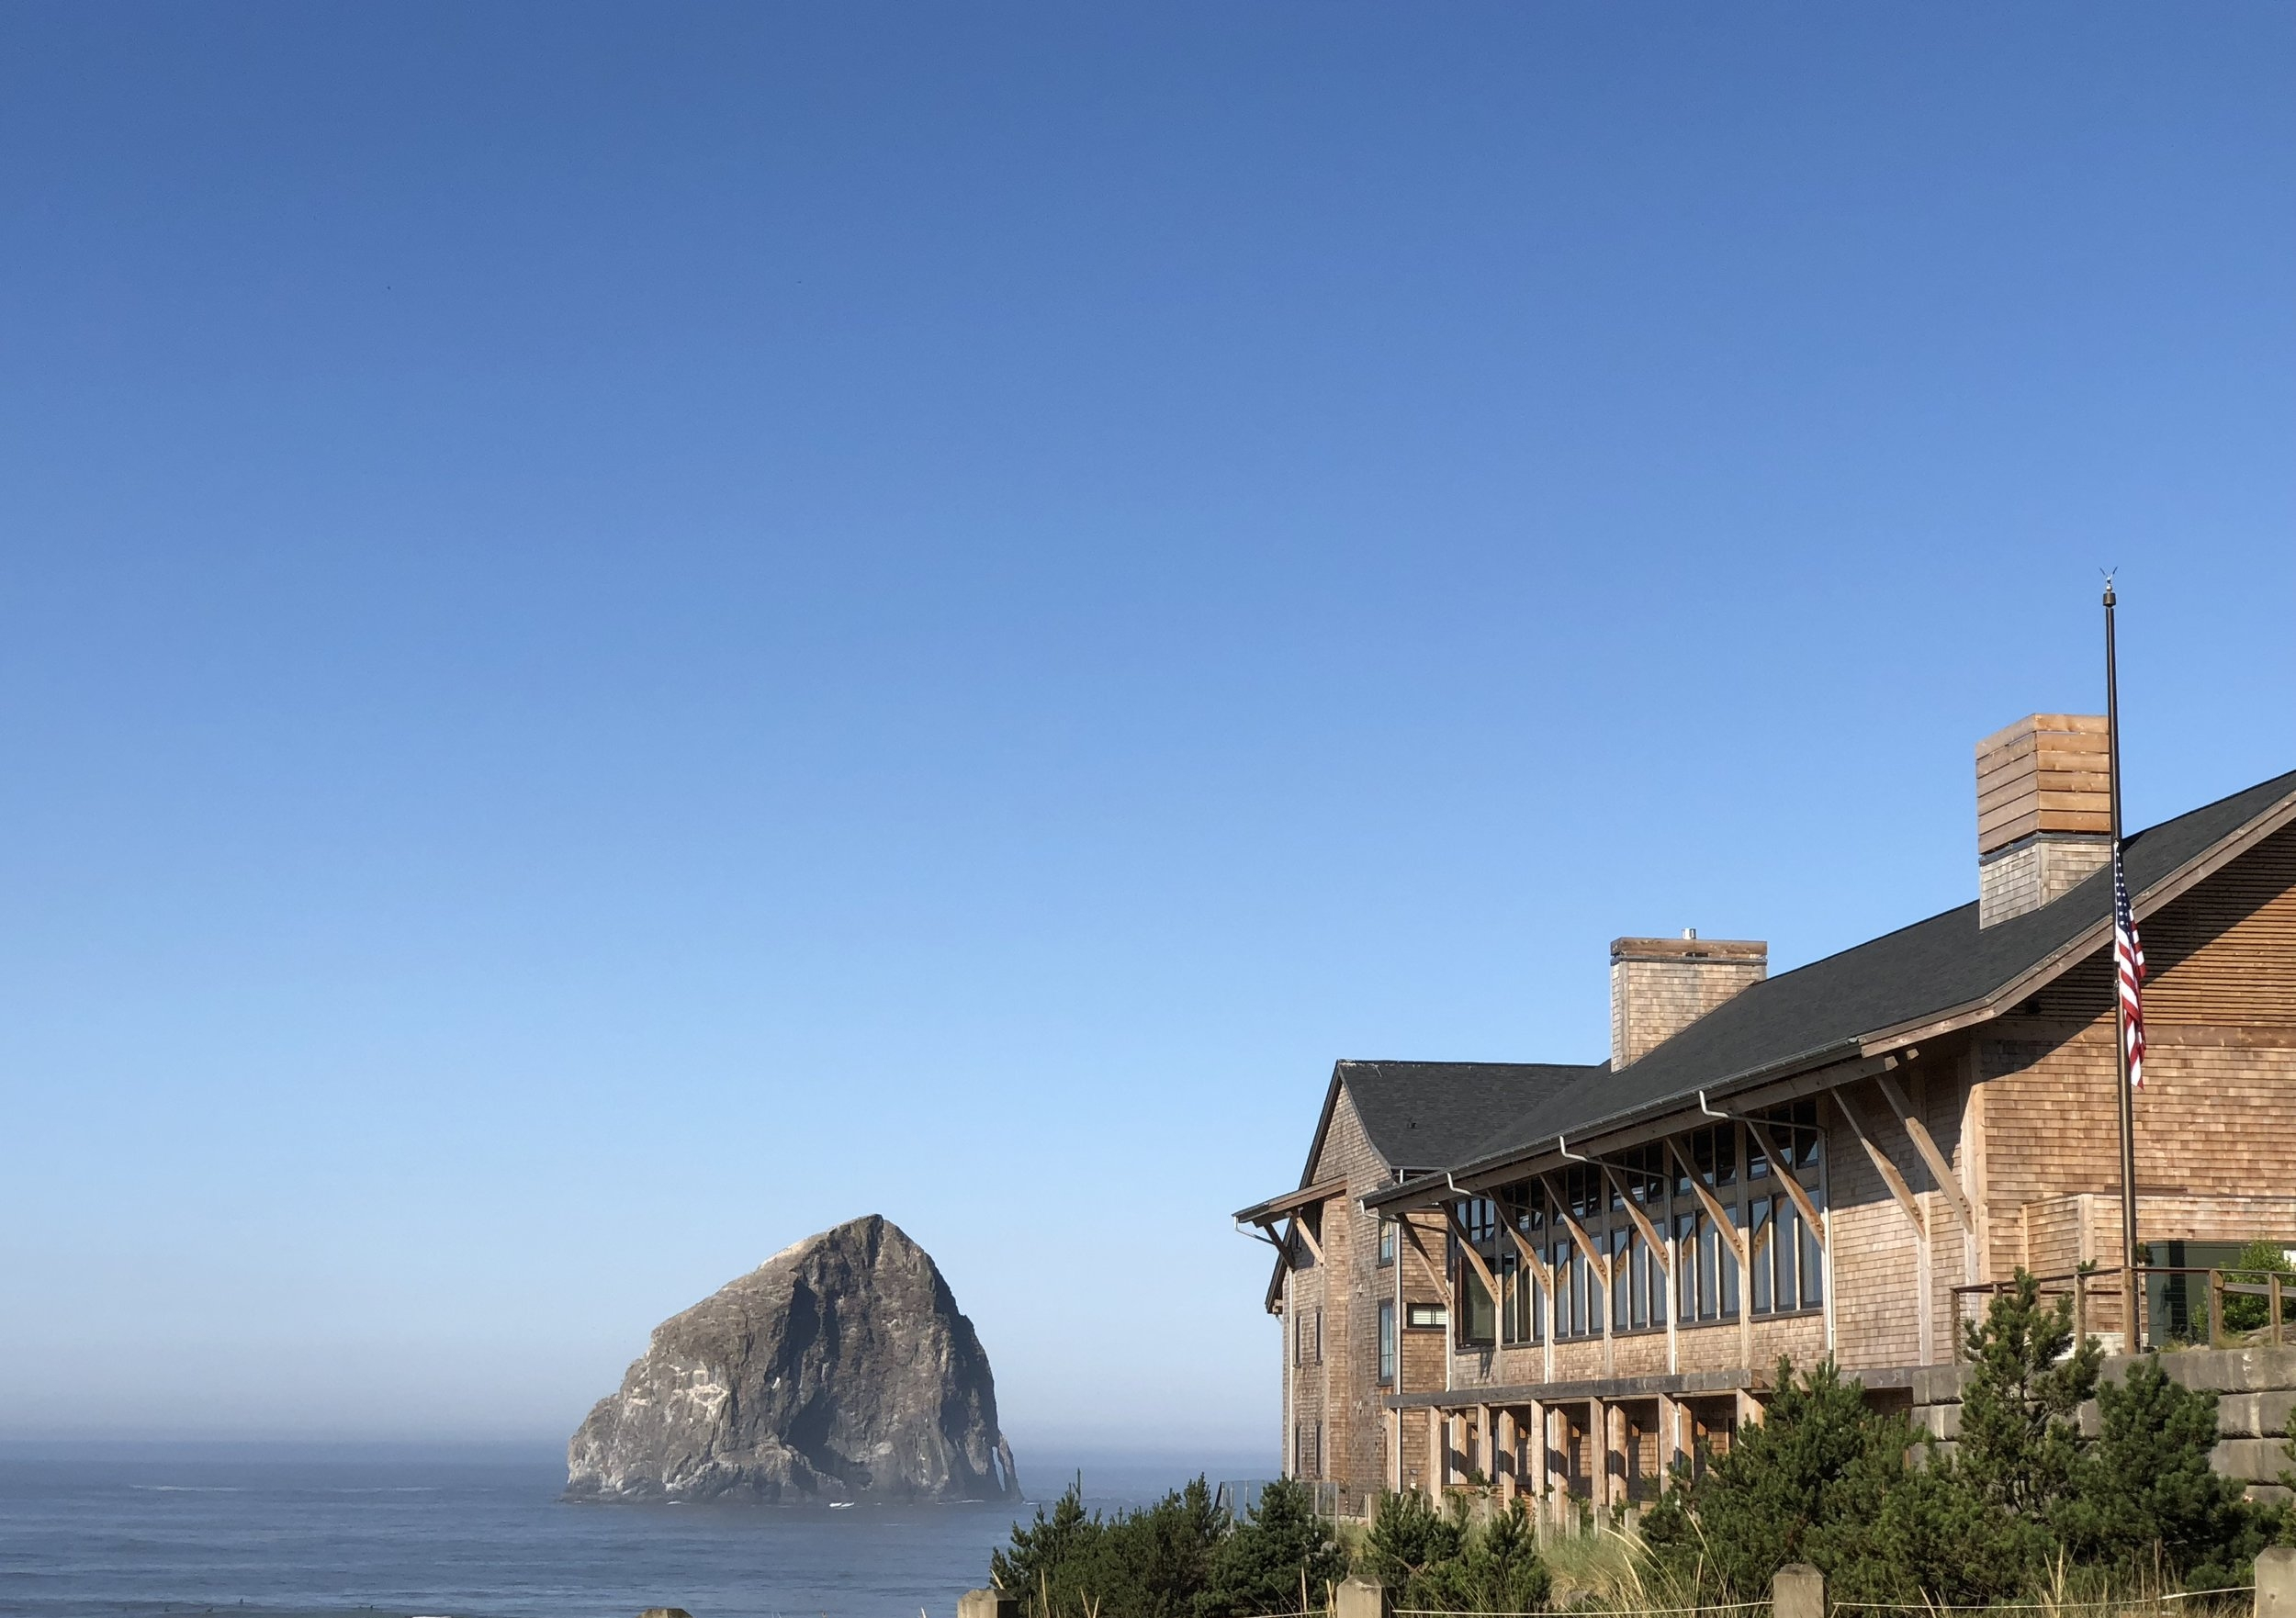 Designed to make the most of the special spot on the Oregon Coast. Each of their 33 Oceanfront Lodge guest rooms have a view of the ocean and Pacific City's dramatic Haystack Rock—with a private balcony or patio from which to enjoy it. Eighteen spacious Oceanfront Cottages accommodate families.